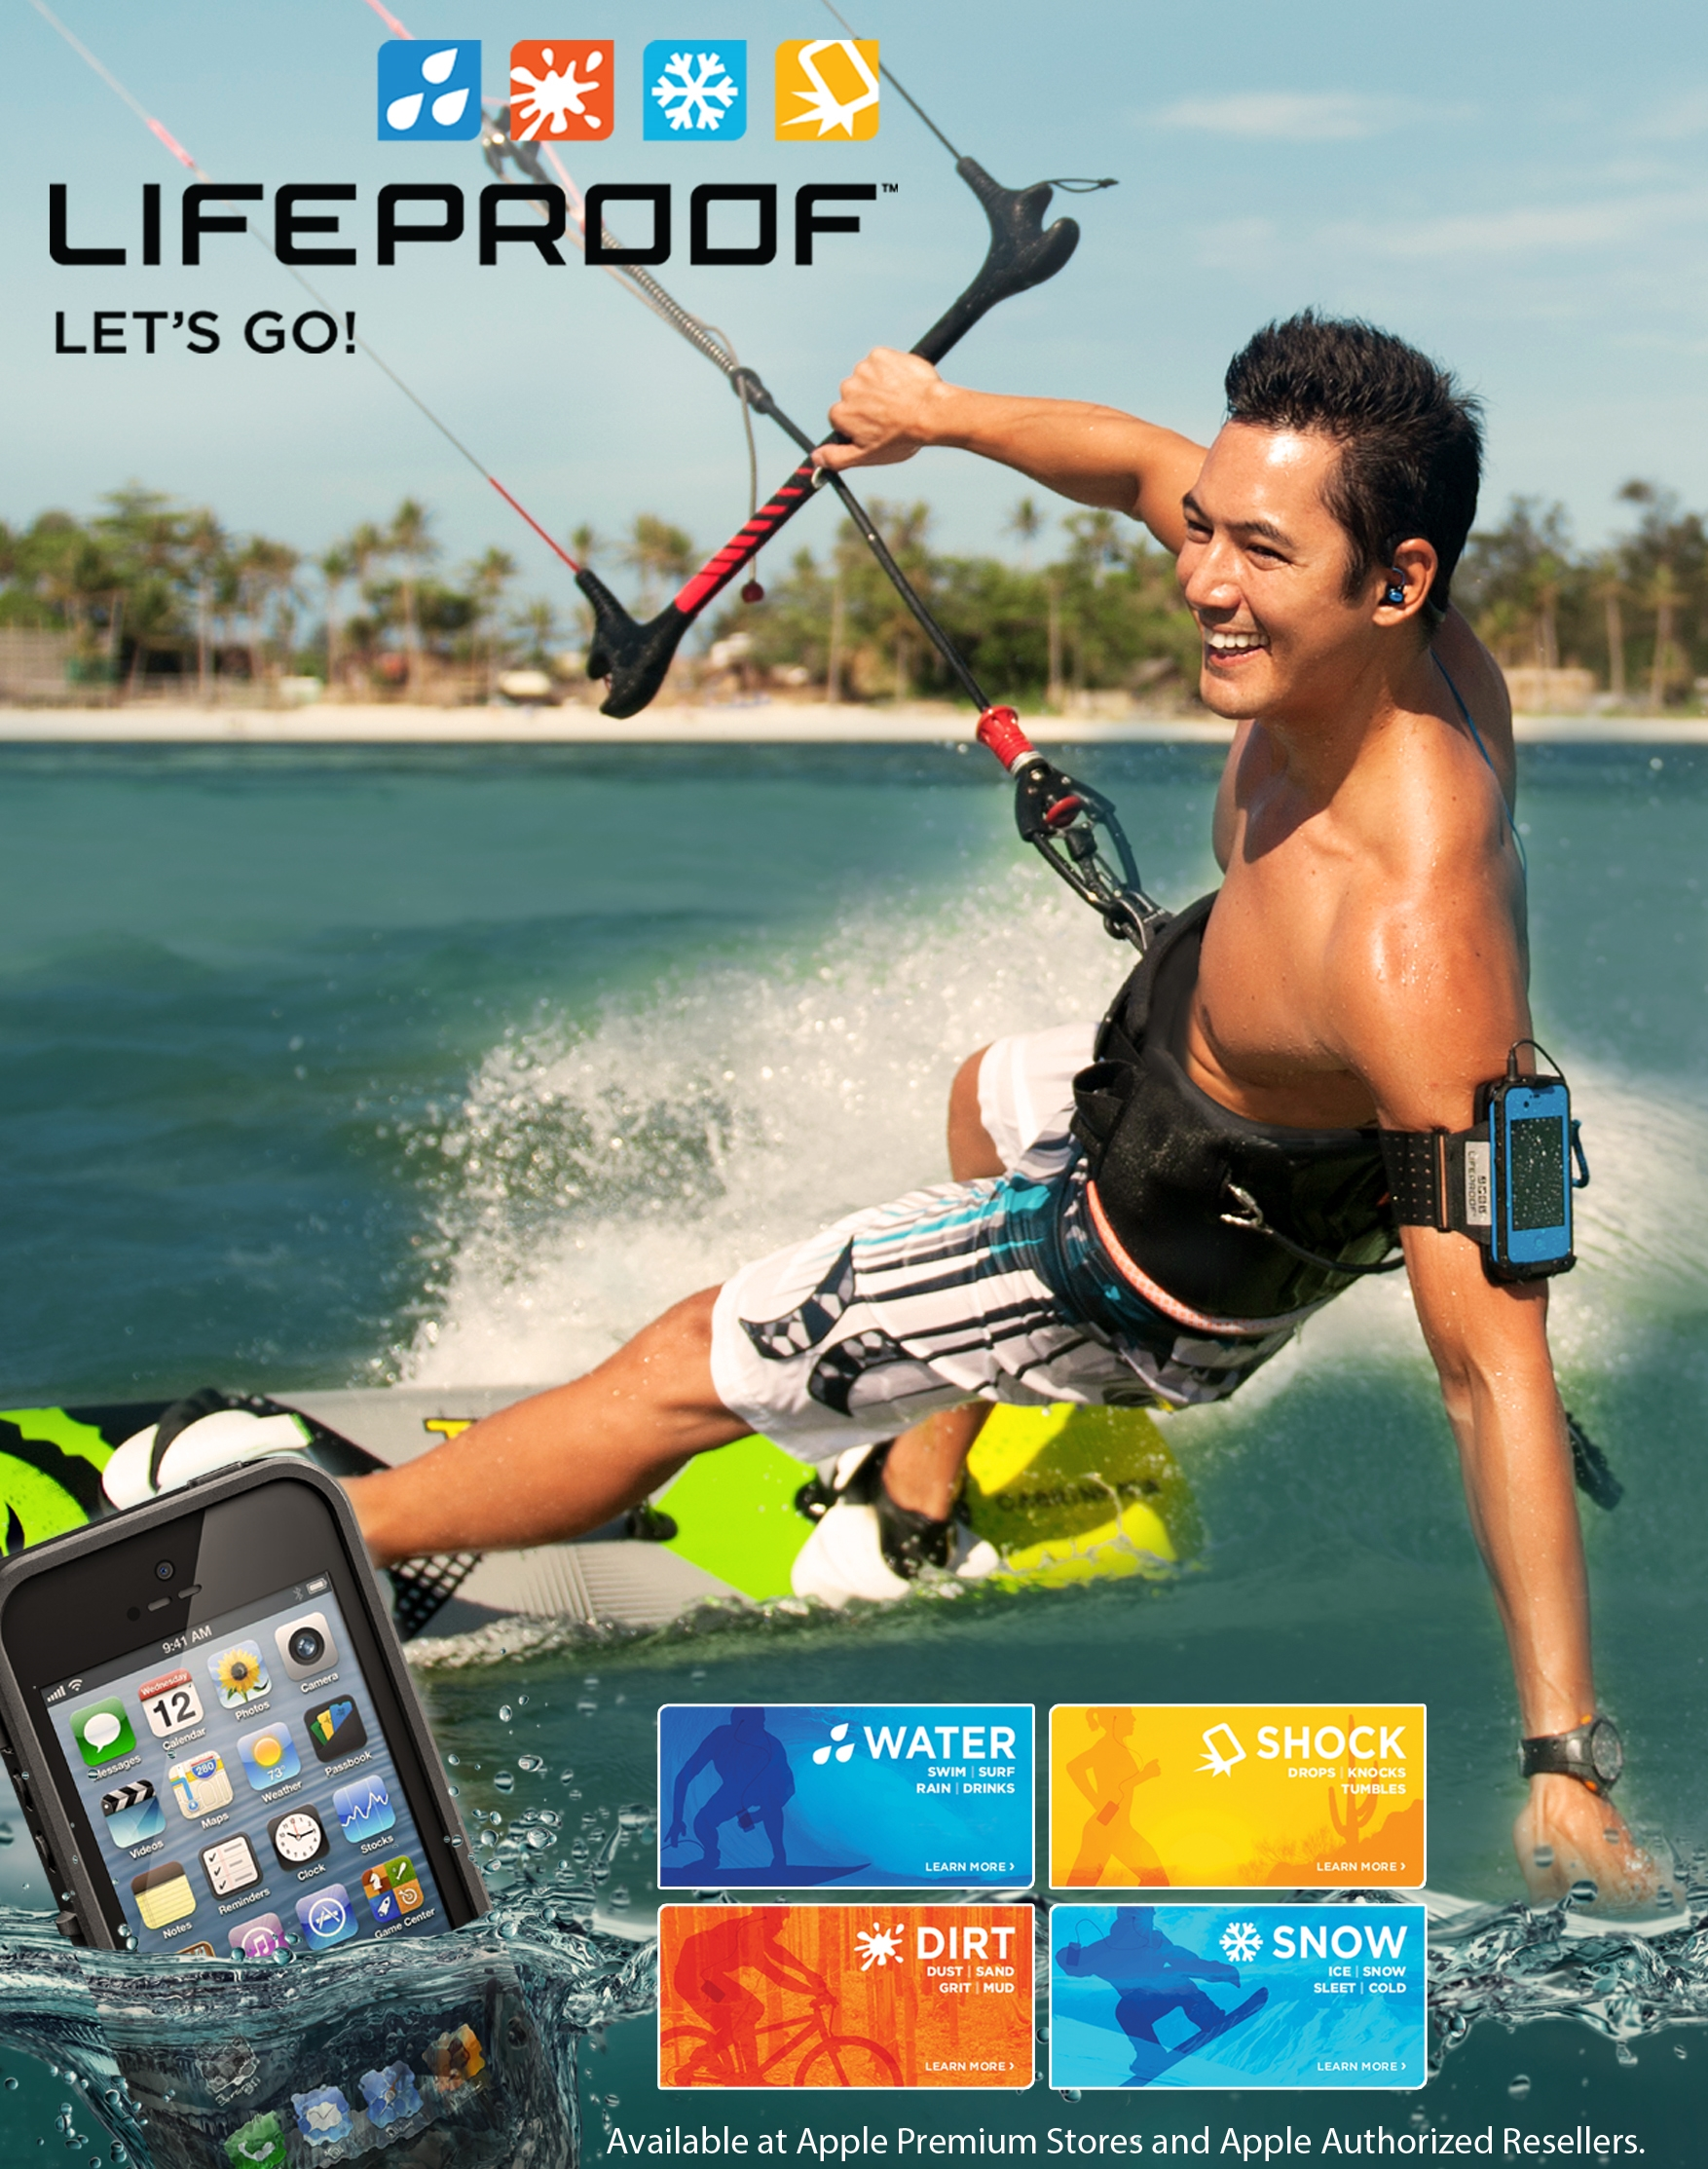 Marc Nelson for Lifeproof